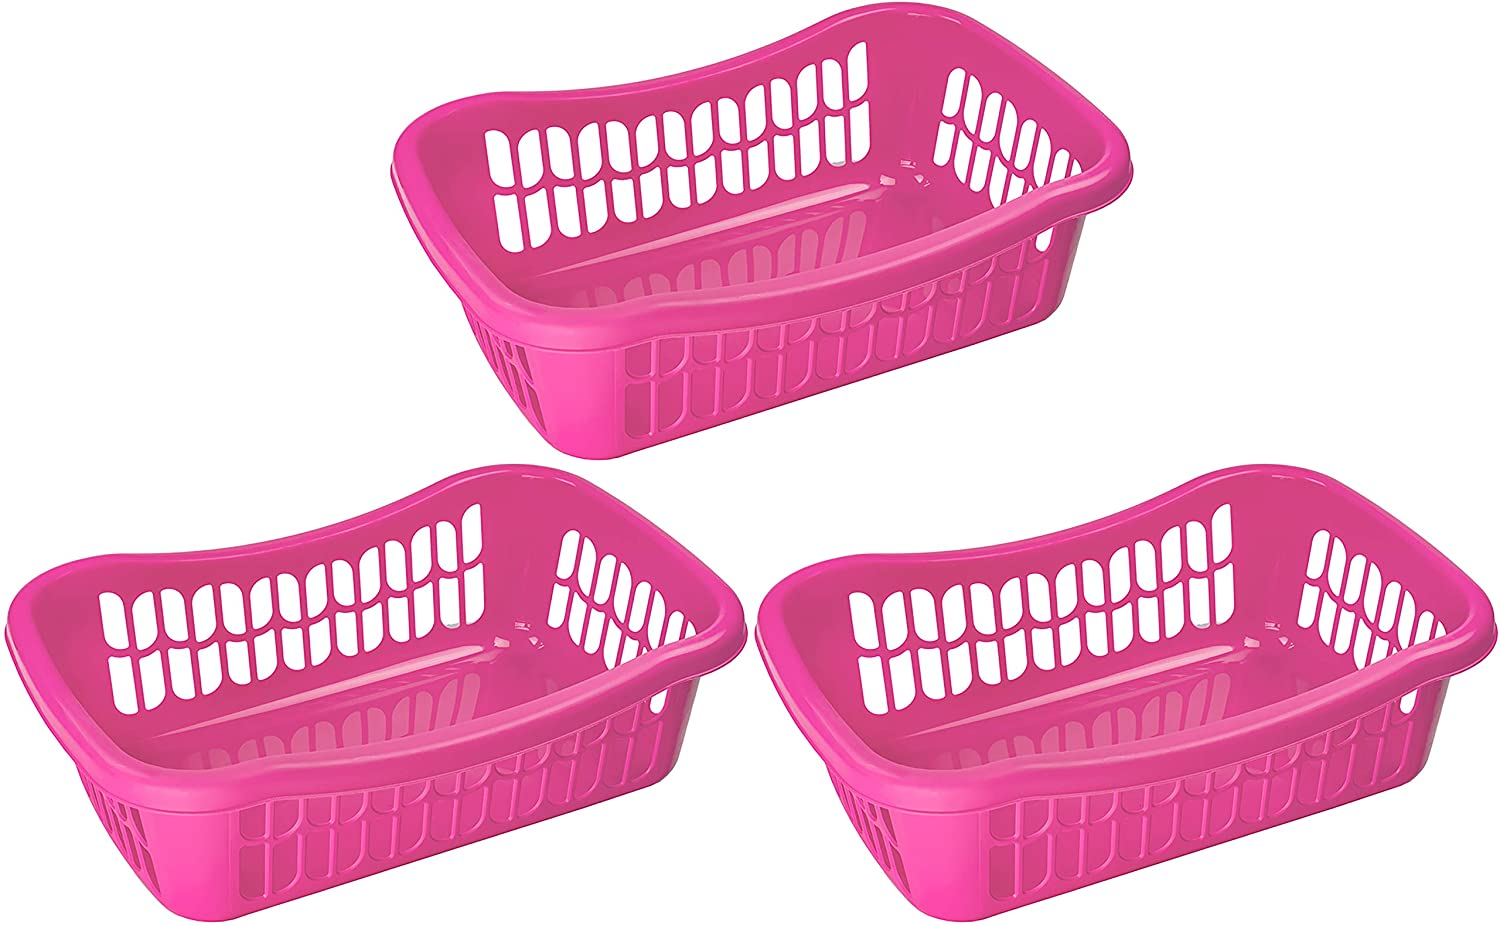 YBM HOME Large Plastic Storage Basket for Organizing Kitchen Pantry, Countertop, Bathroom, Kids Room, Office Drawer, Junk Drawers, and Shelves (Pink)